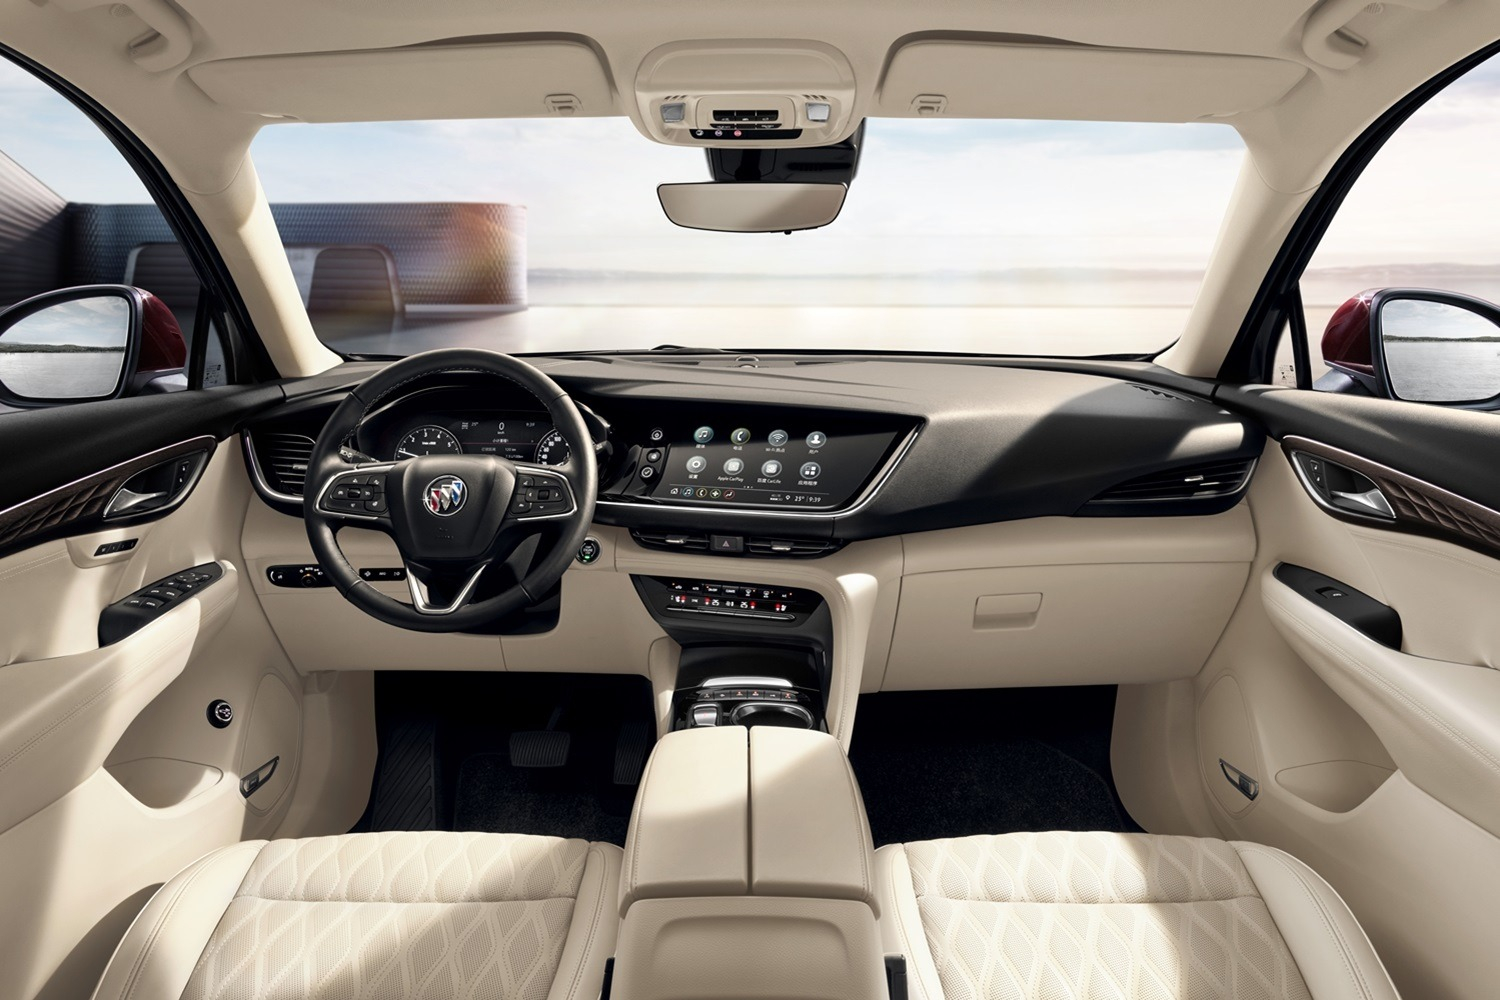 2021 Buick Envision Interior Revealed In Brand New Photos New 2021 Buick Enclave Interior, Features, Fwd